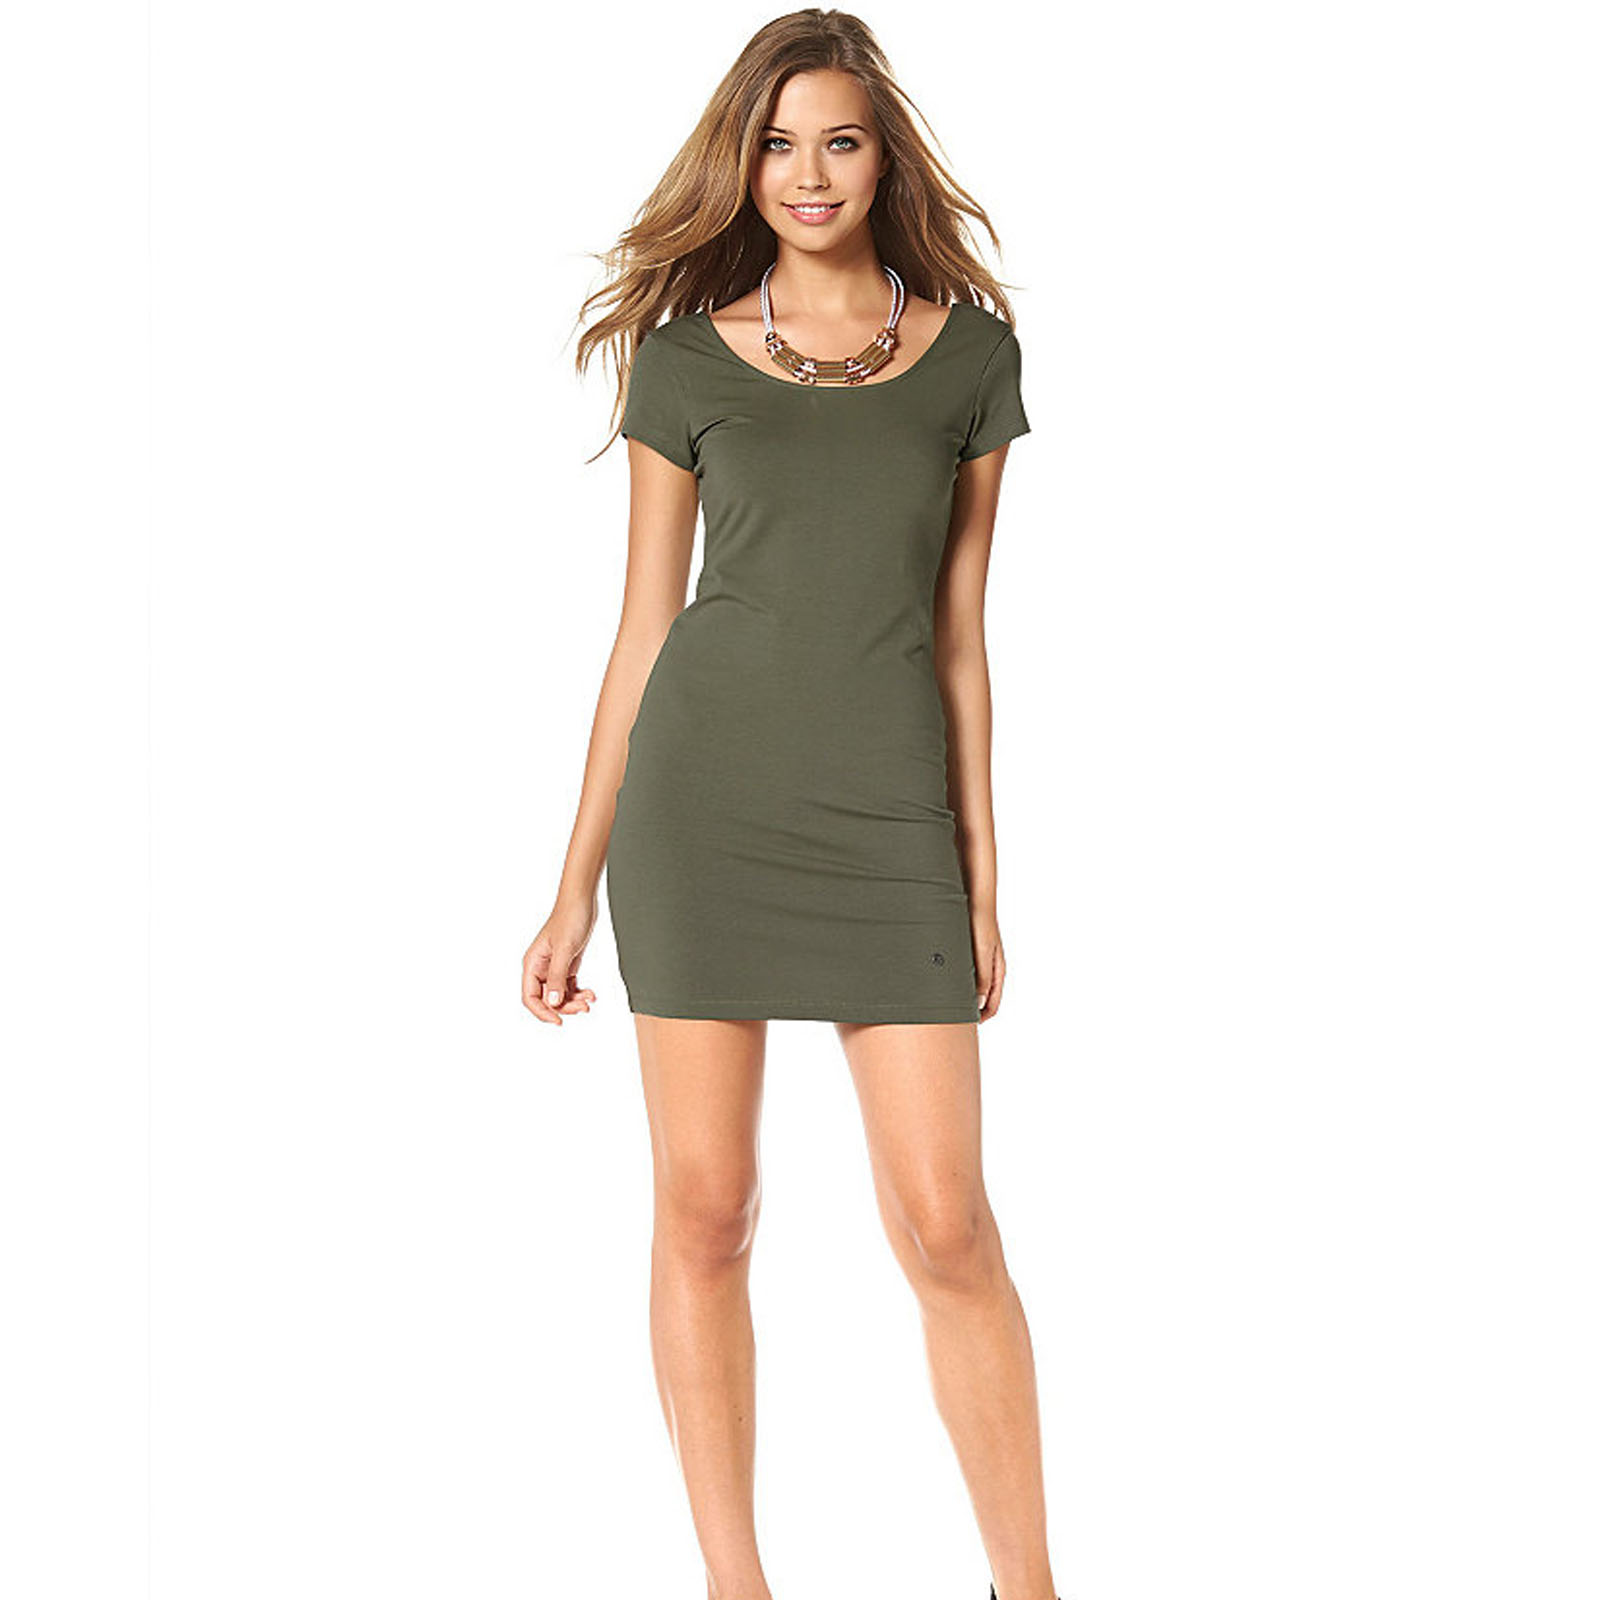 sommerkleid khaki stretch sexy mini dress 42 44 46 50 52 kleid l xl xxl. Black Bedroom Furniture Sets. Home Design Ideas